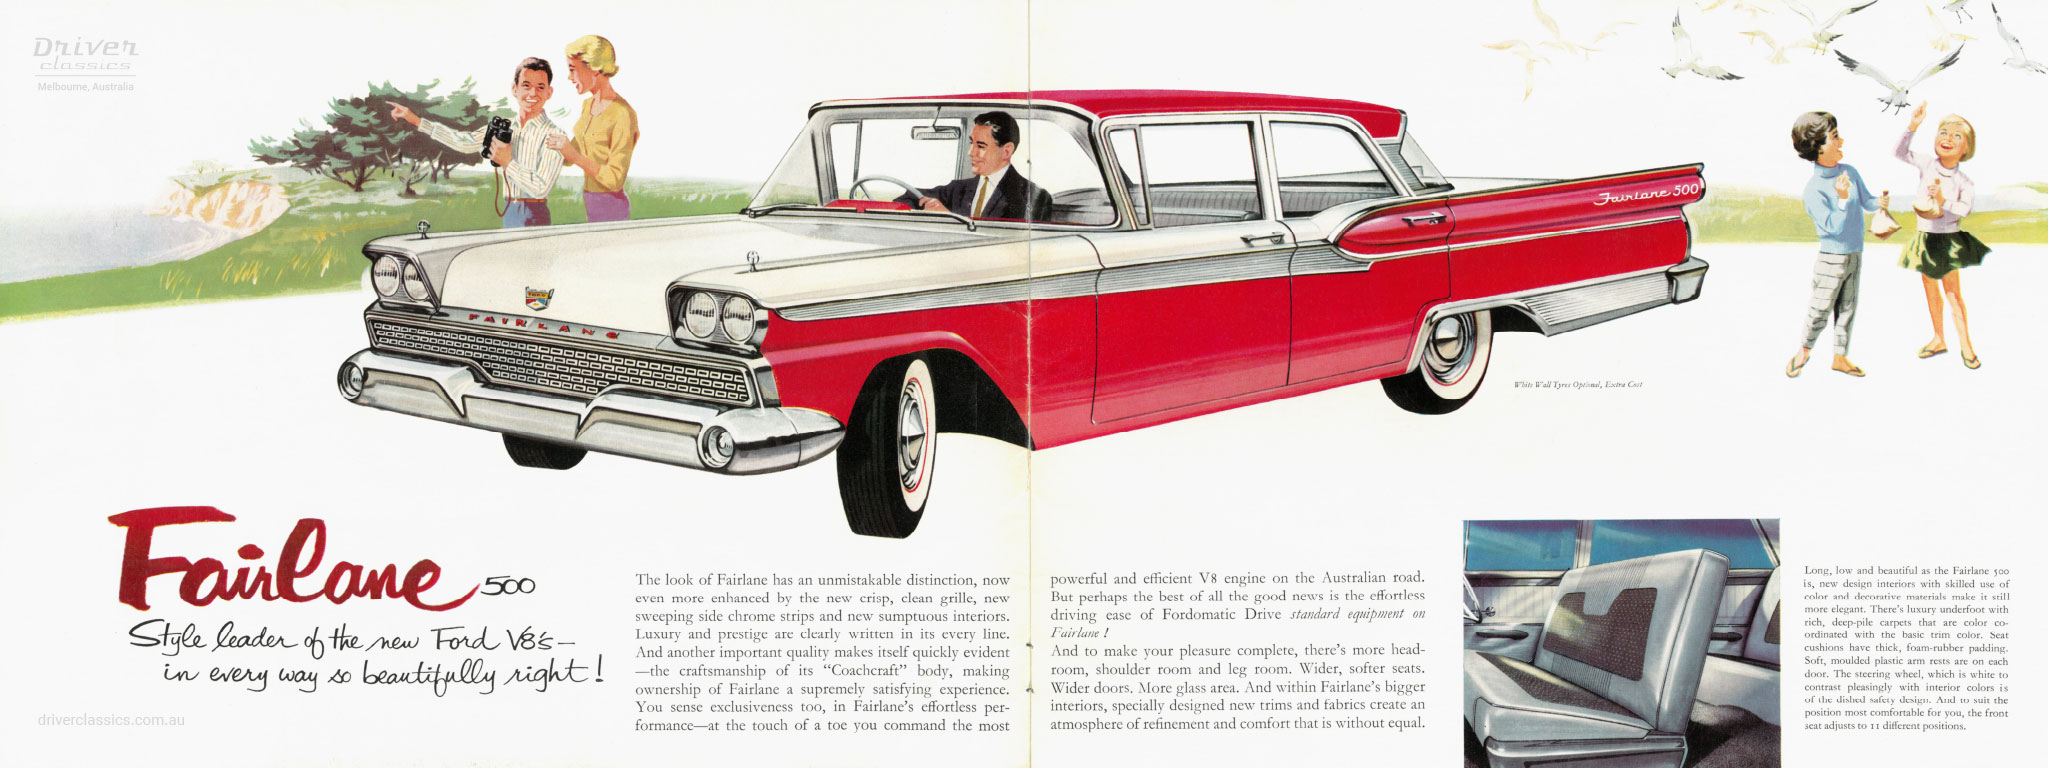 Brochure page of 1960 Ford Fairlane 500